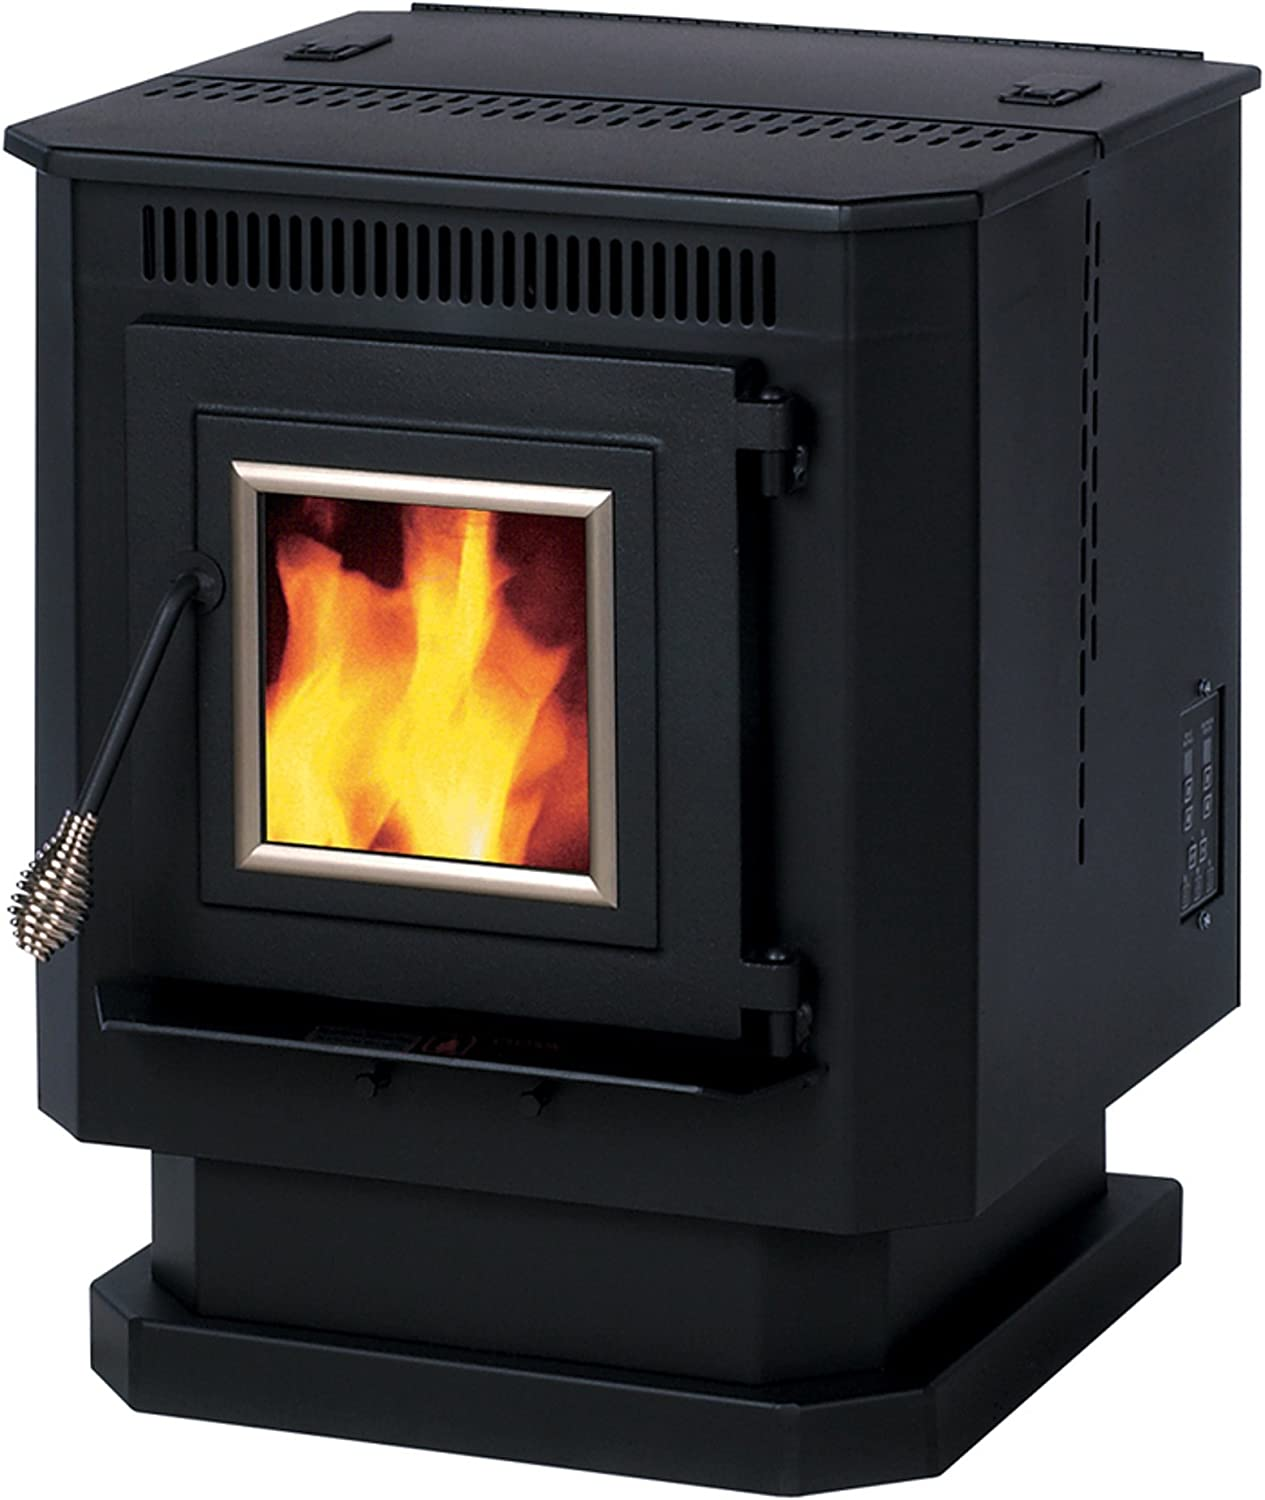 B000AMC600 Summers Heat 55-SHP10 Pellet Stove 1,500 Square Foot 71KV7YwG9ML.SL1500_